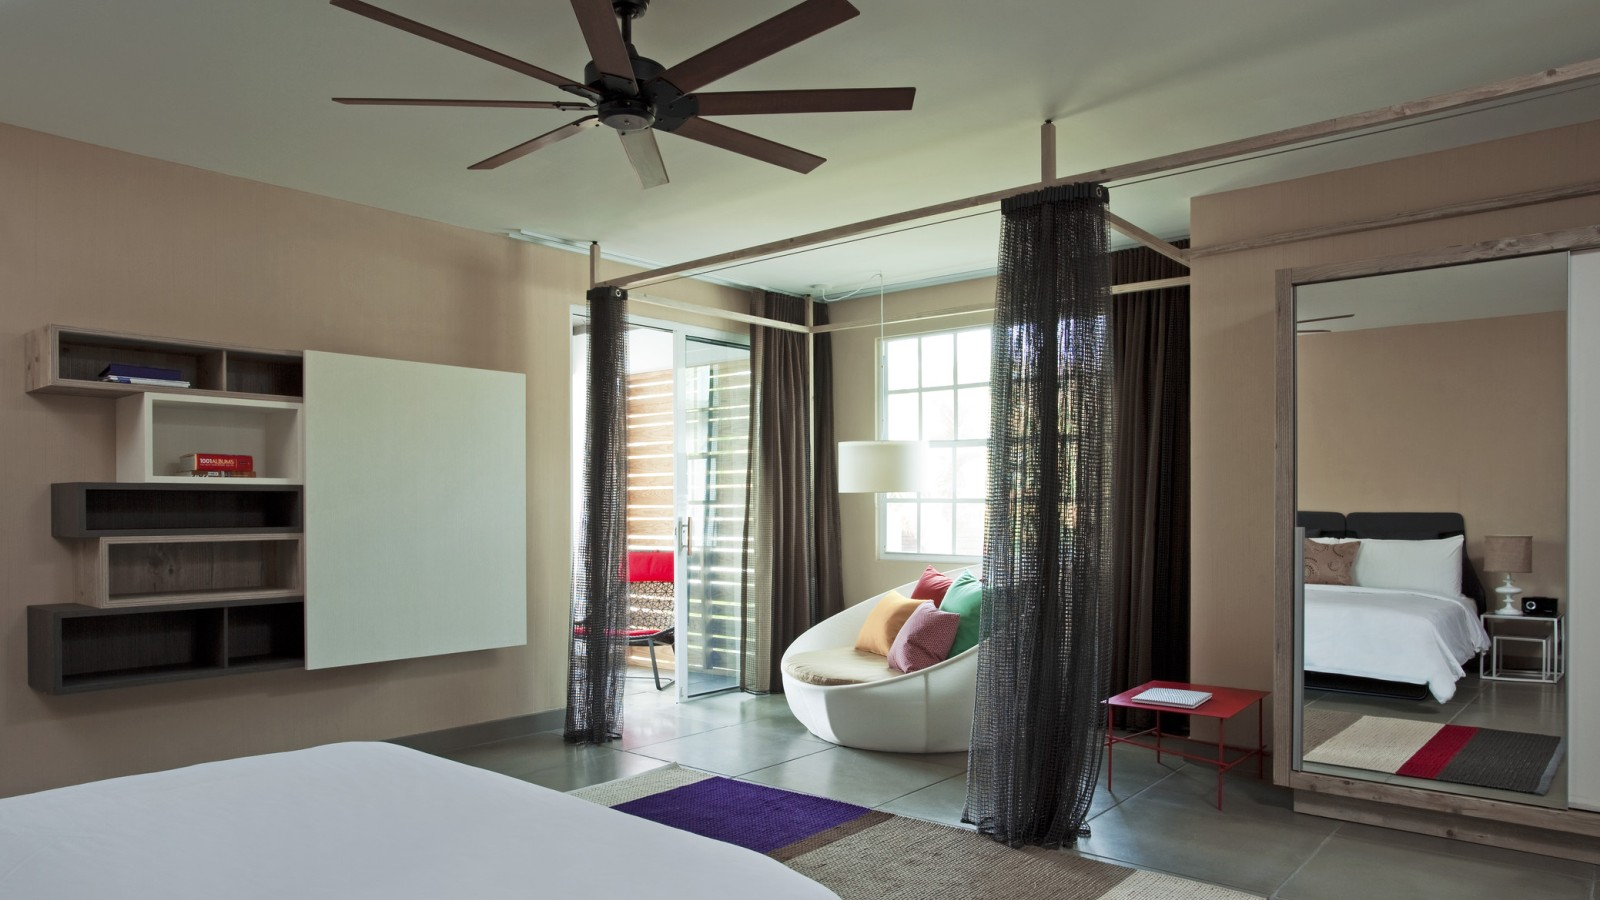 Spa Inspired Bedrooms Colorful Exuberant Interior Design Inspiration From W Retreat